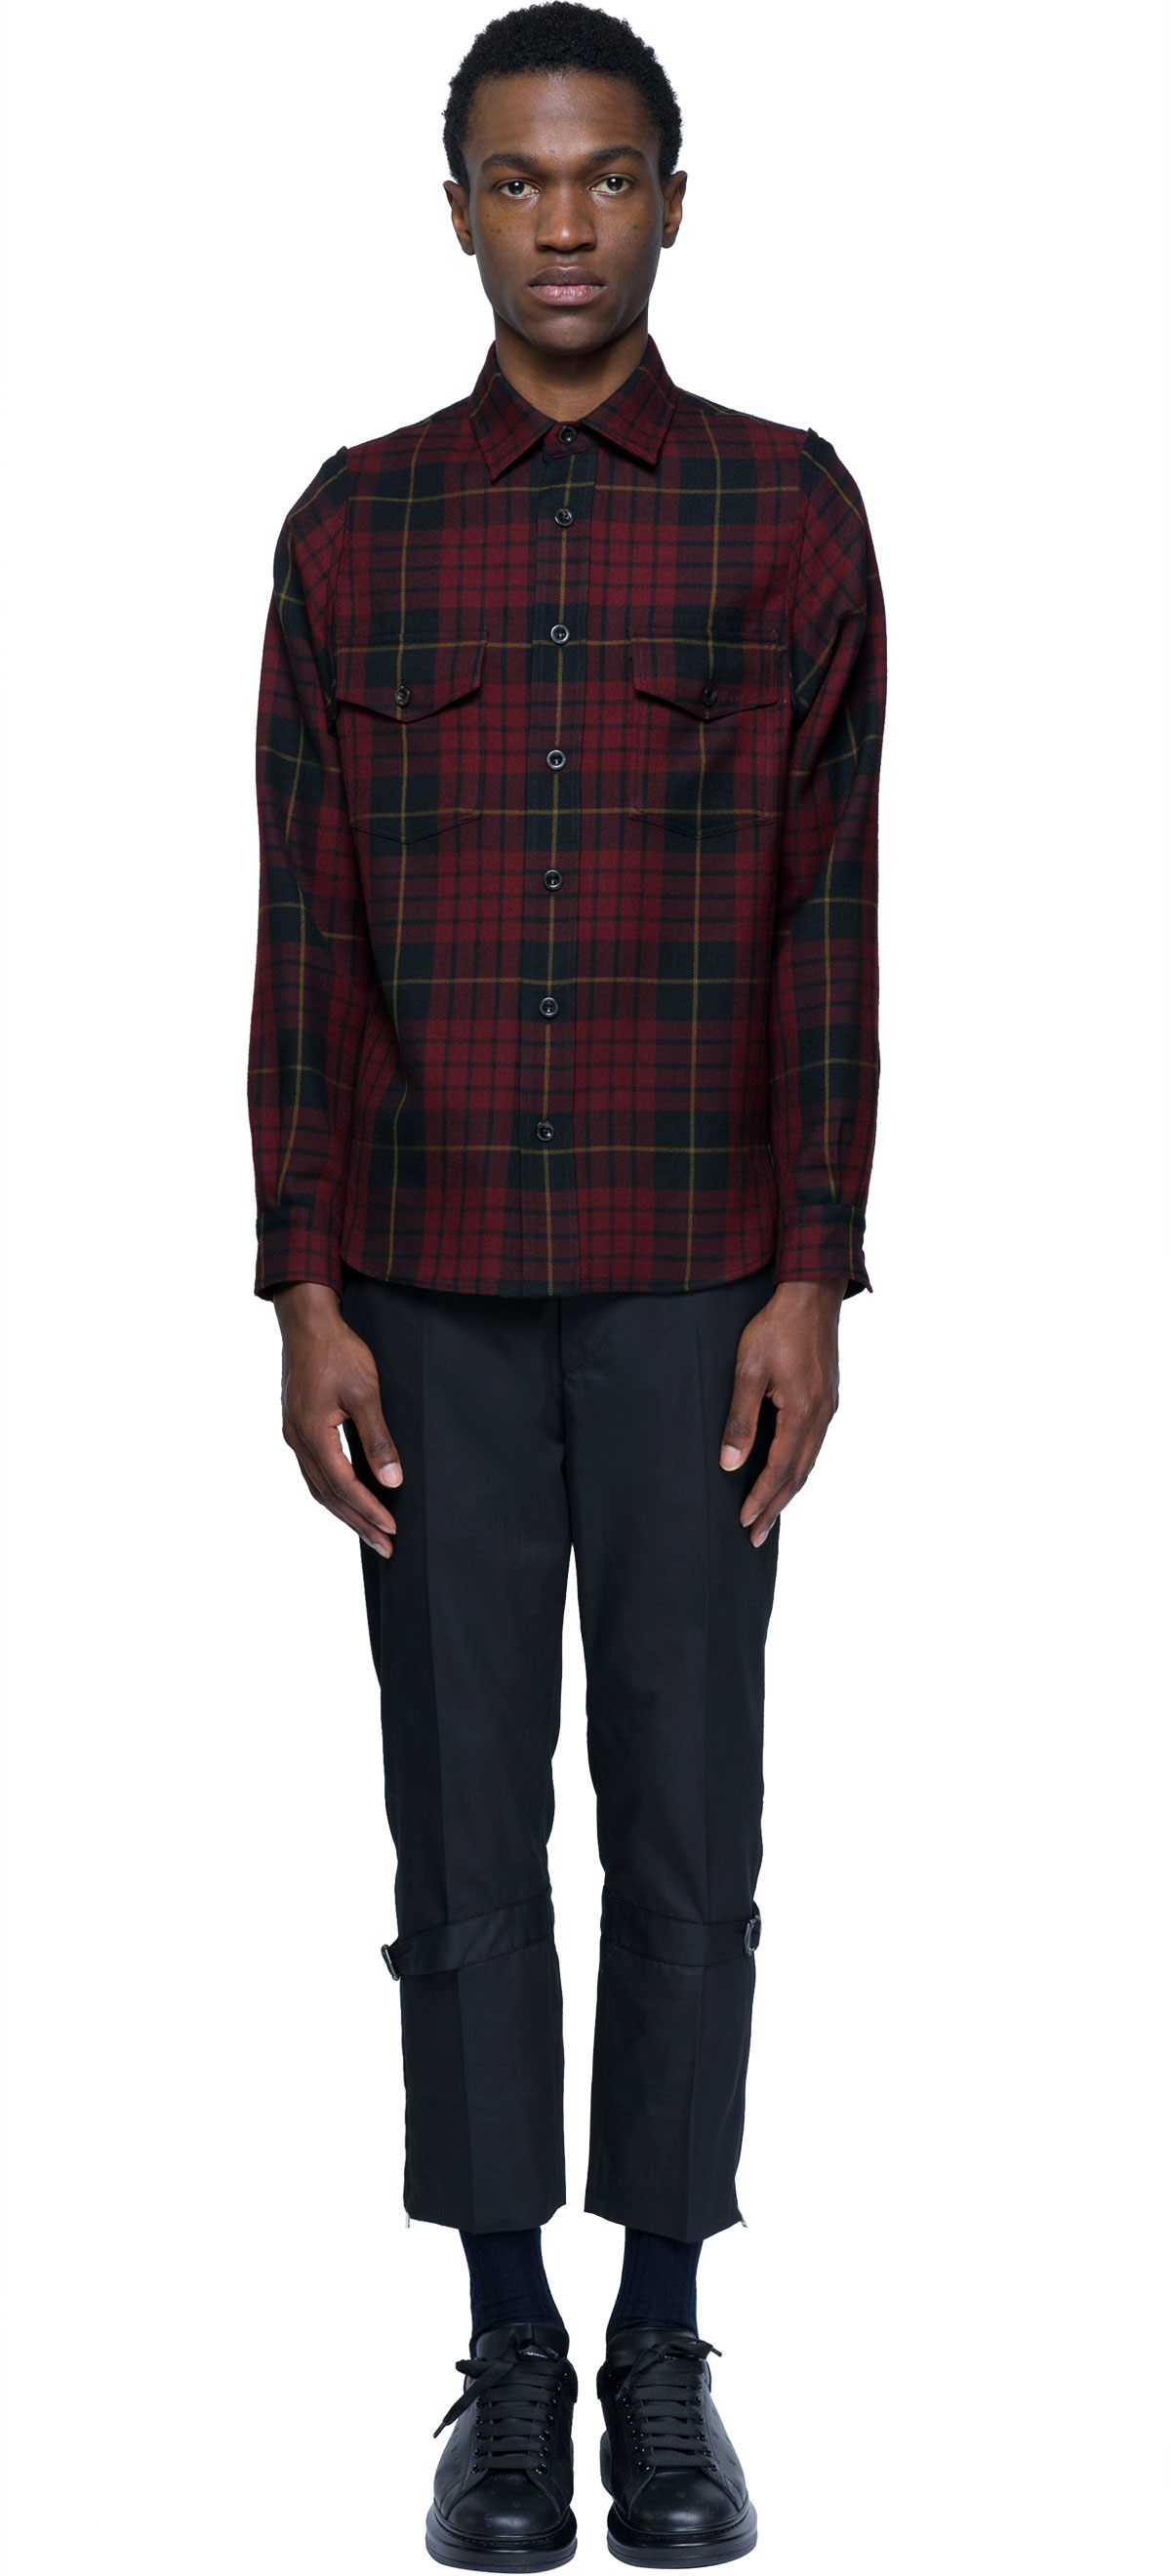 Alexander mcqueen Tartan Shirt in Multicolor for Men